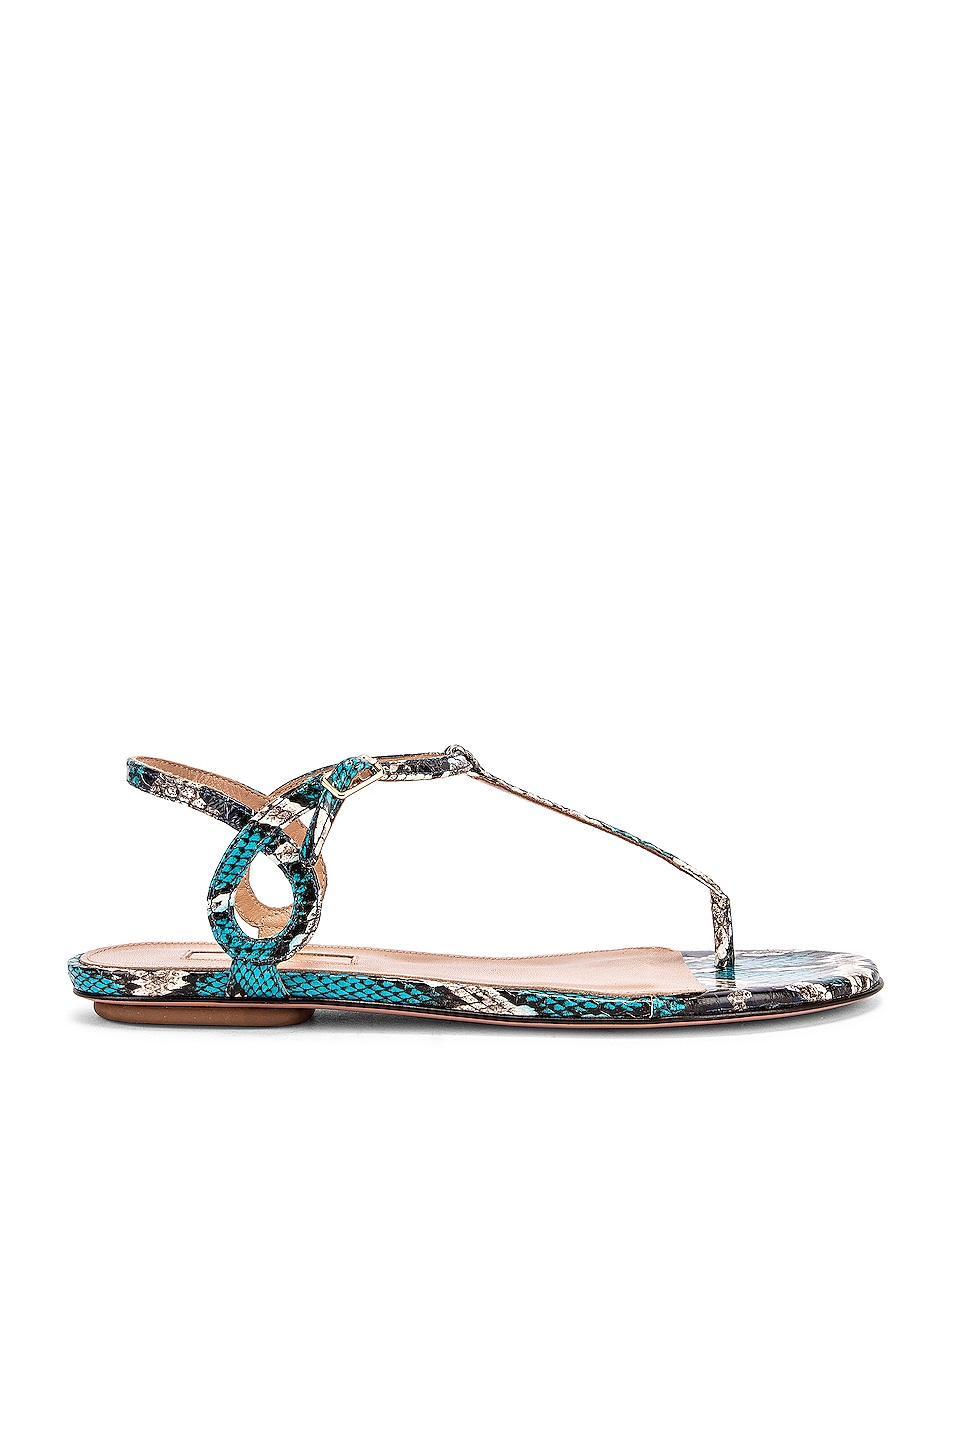 Image 1 of Aquazzura Almost Bare Jungle Snake Sandal Flat in Mix Blue